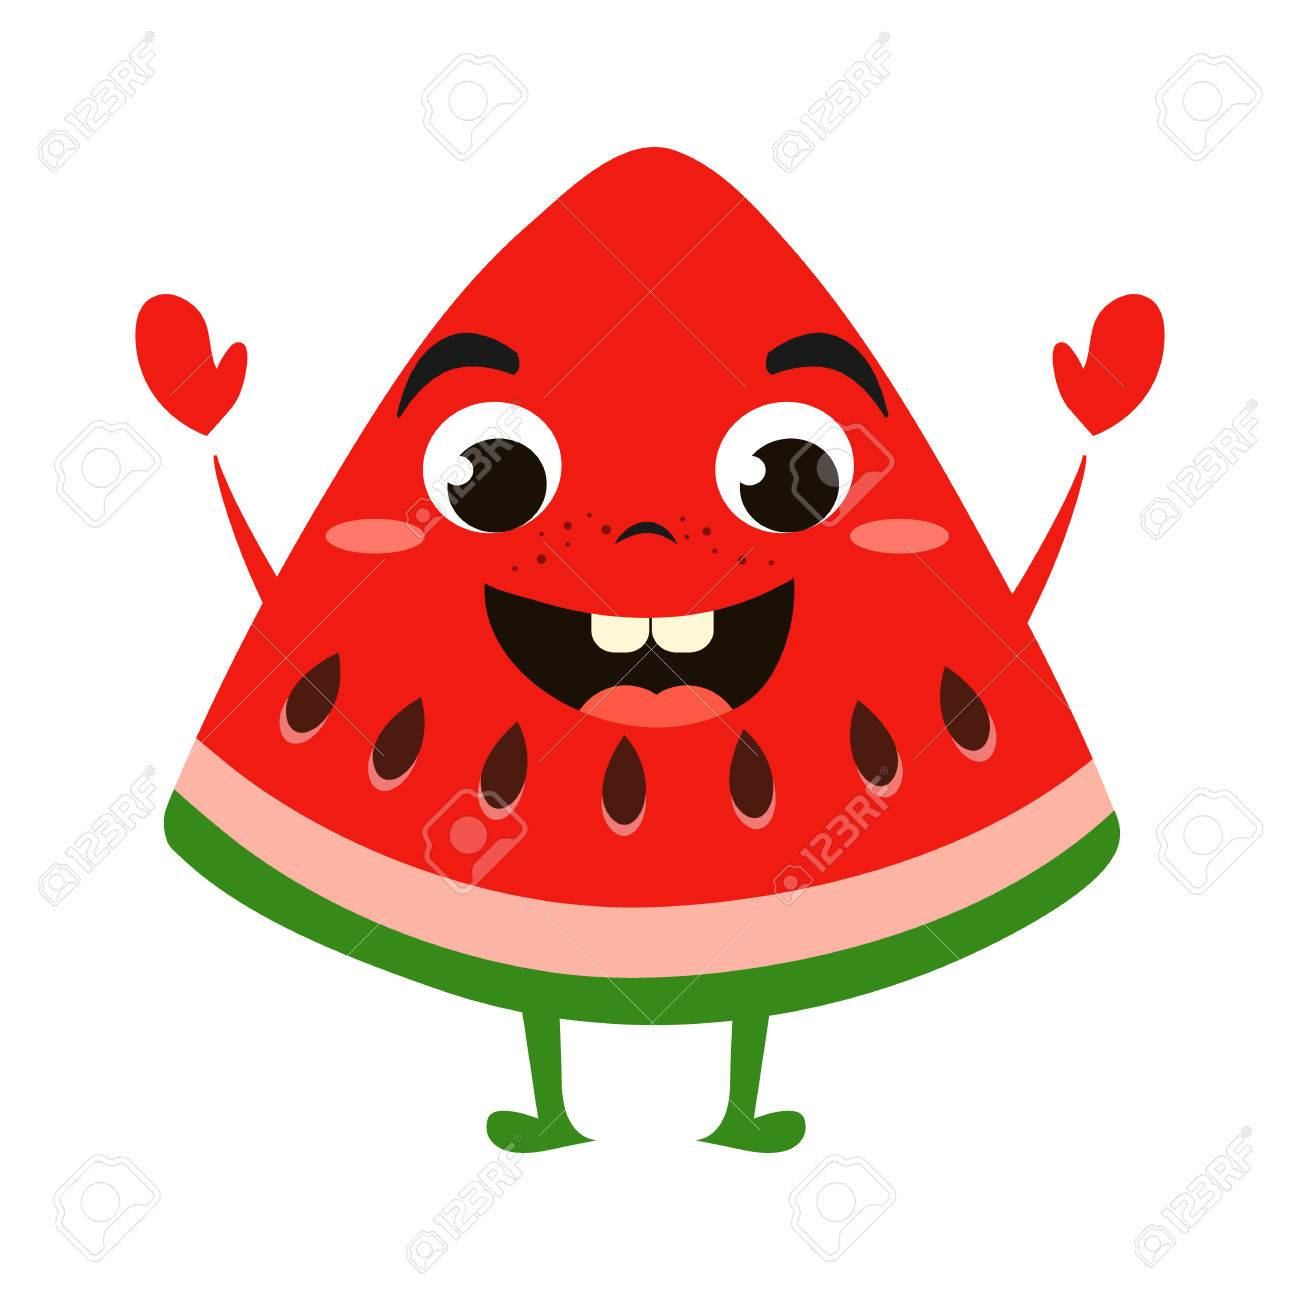 Animated Food Free Download Clip Art.